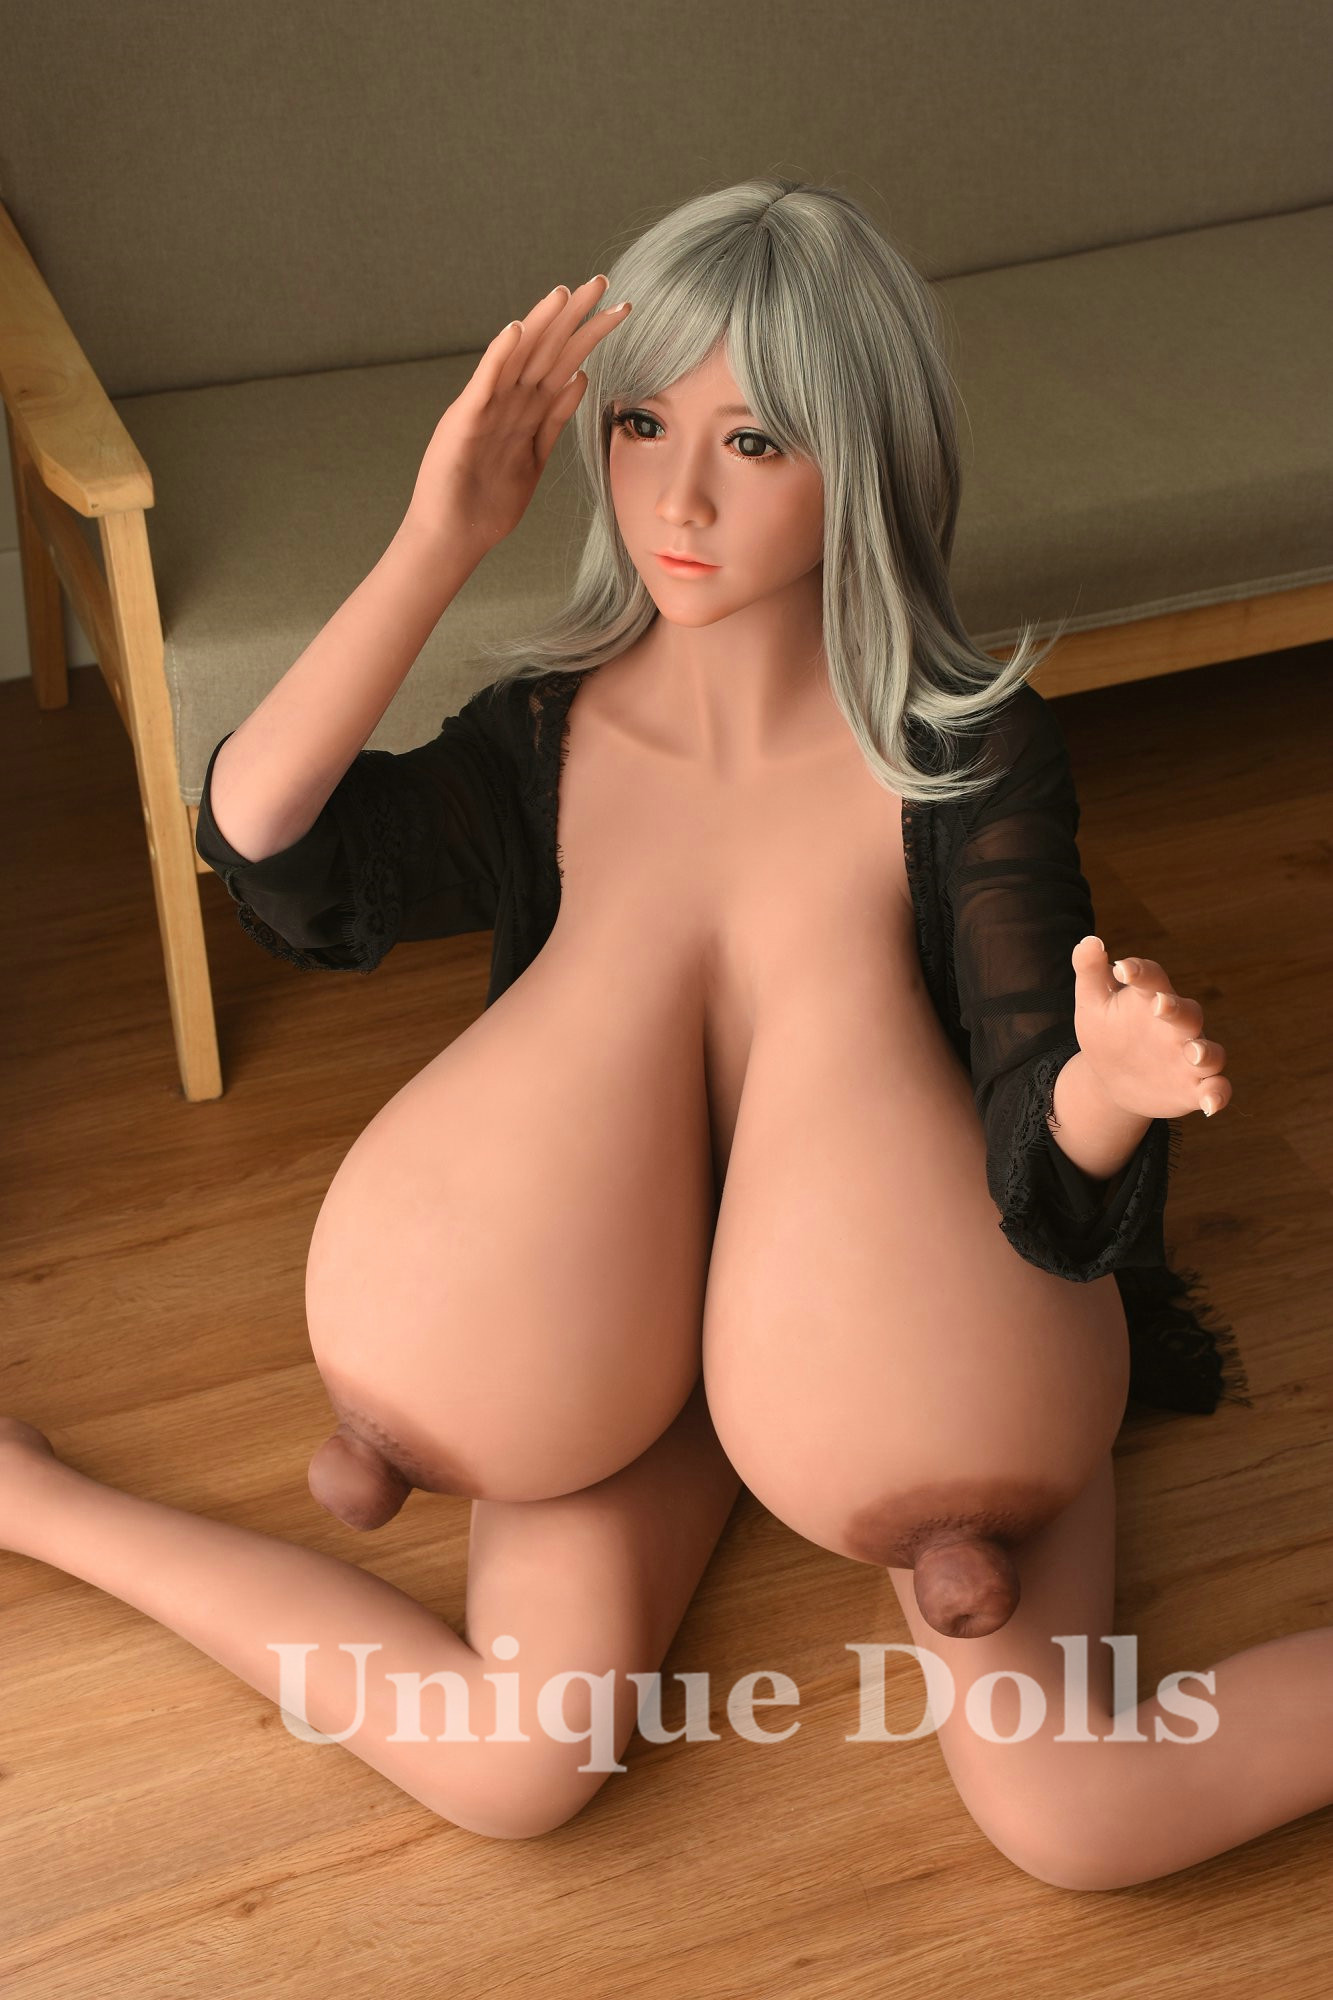 AXB-Cathy huge breasts TPE sex doll